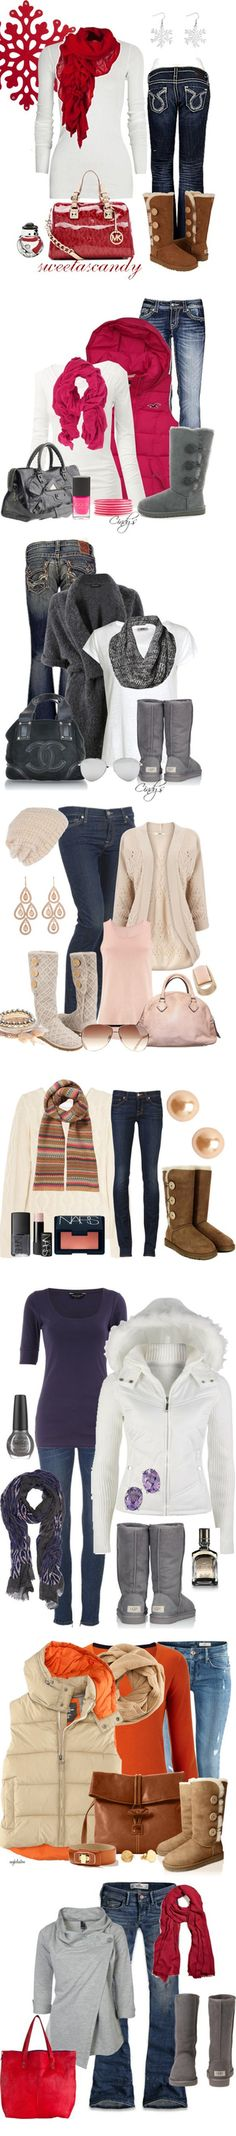 Great casual chic holiday outfits